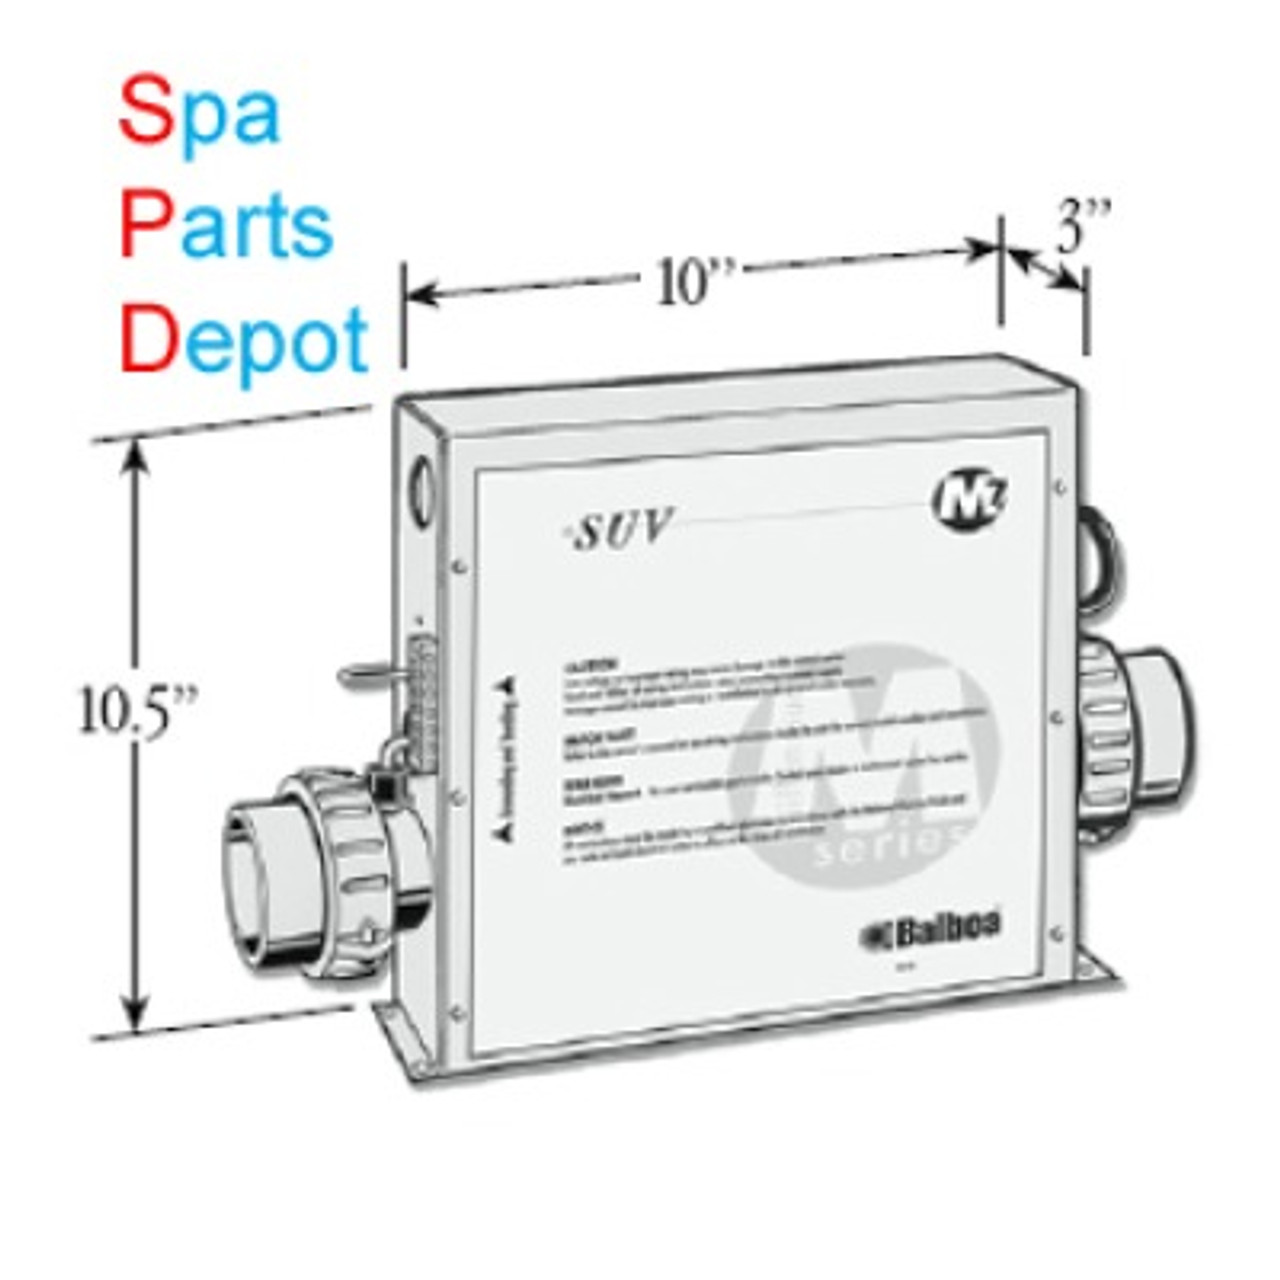 balboa spa parts, balboa vs series wiring, morgan spa diagram, dimension one spa circuit board diagram, balboa spa lights, swimming pool pump plumbing diagram, balboa spa relay, spa pump installation diagram, watkins control diagram, balboa spa plumbing diagram, balboa spa motor, typical swimming pool plumbing diagram, on balboa spa wiring diagram 01